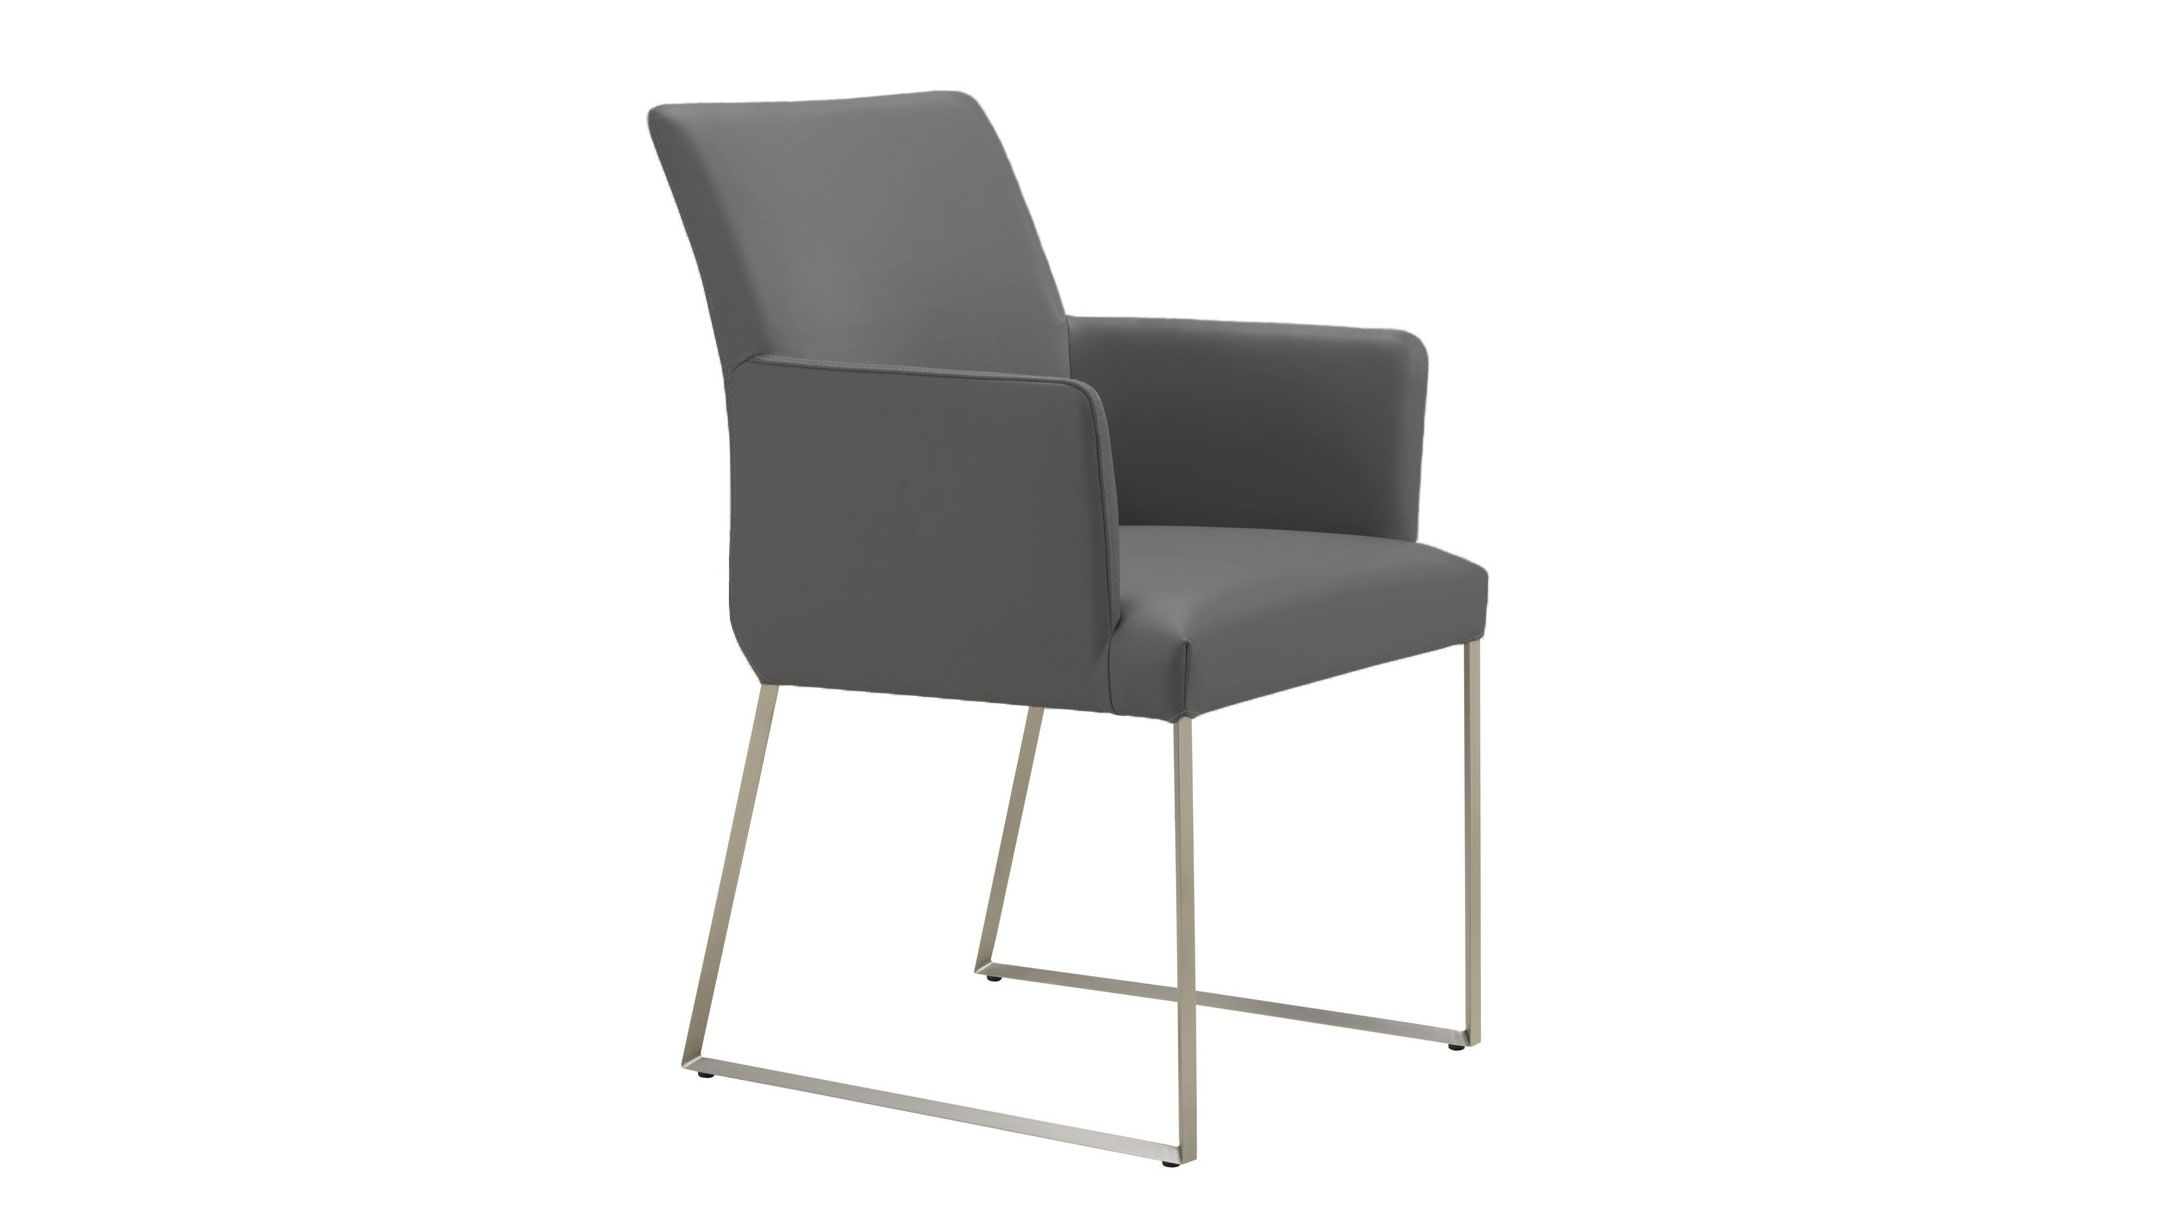 Surprising Monti Real Leather Armchair Danetti Real Leather Dining Pdpeps Interior Chair Design Pdpepsorg